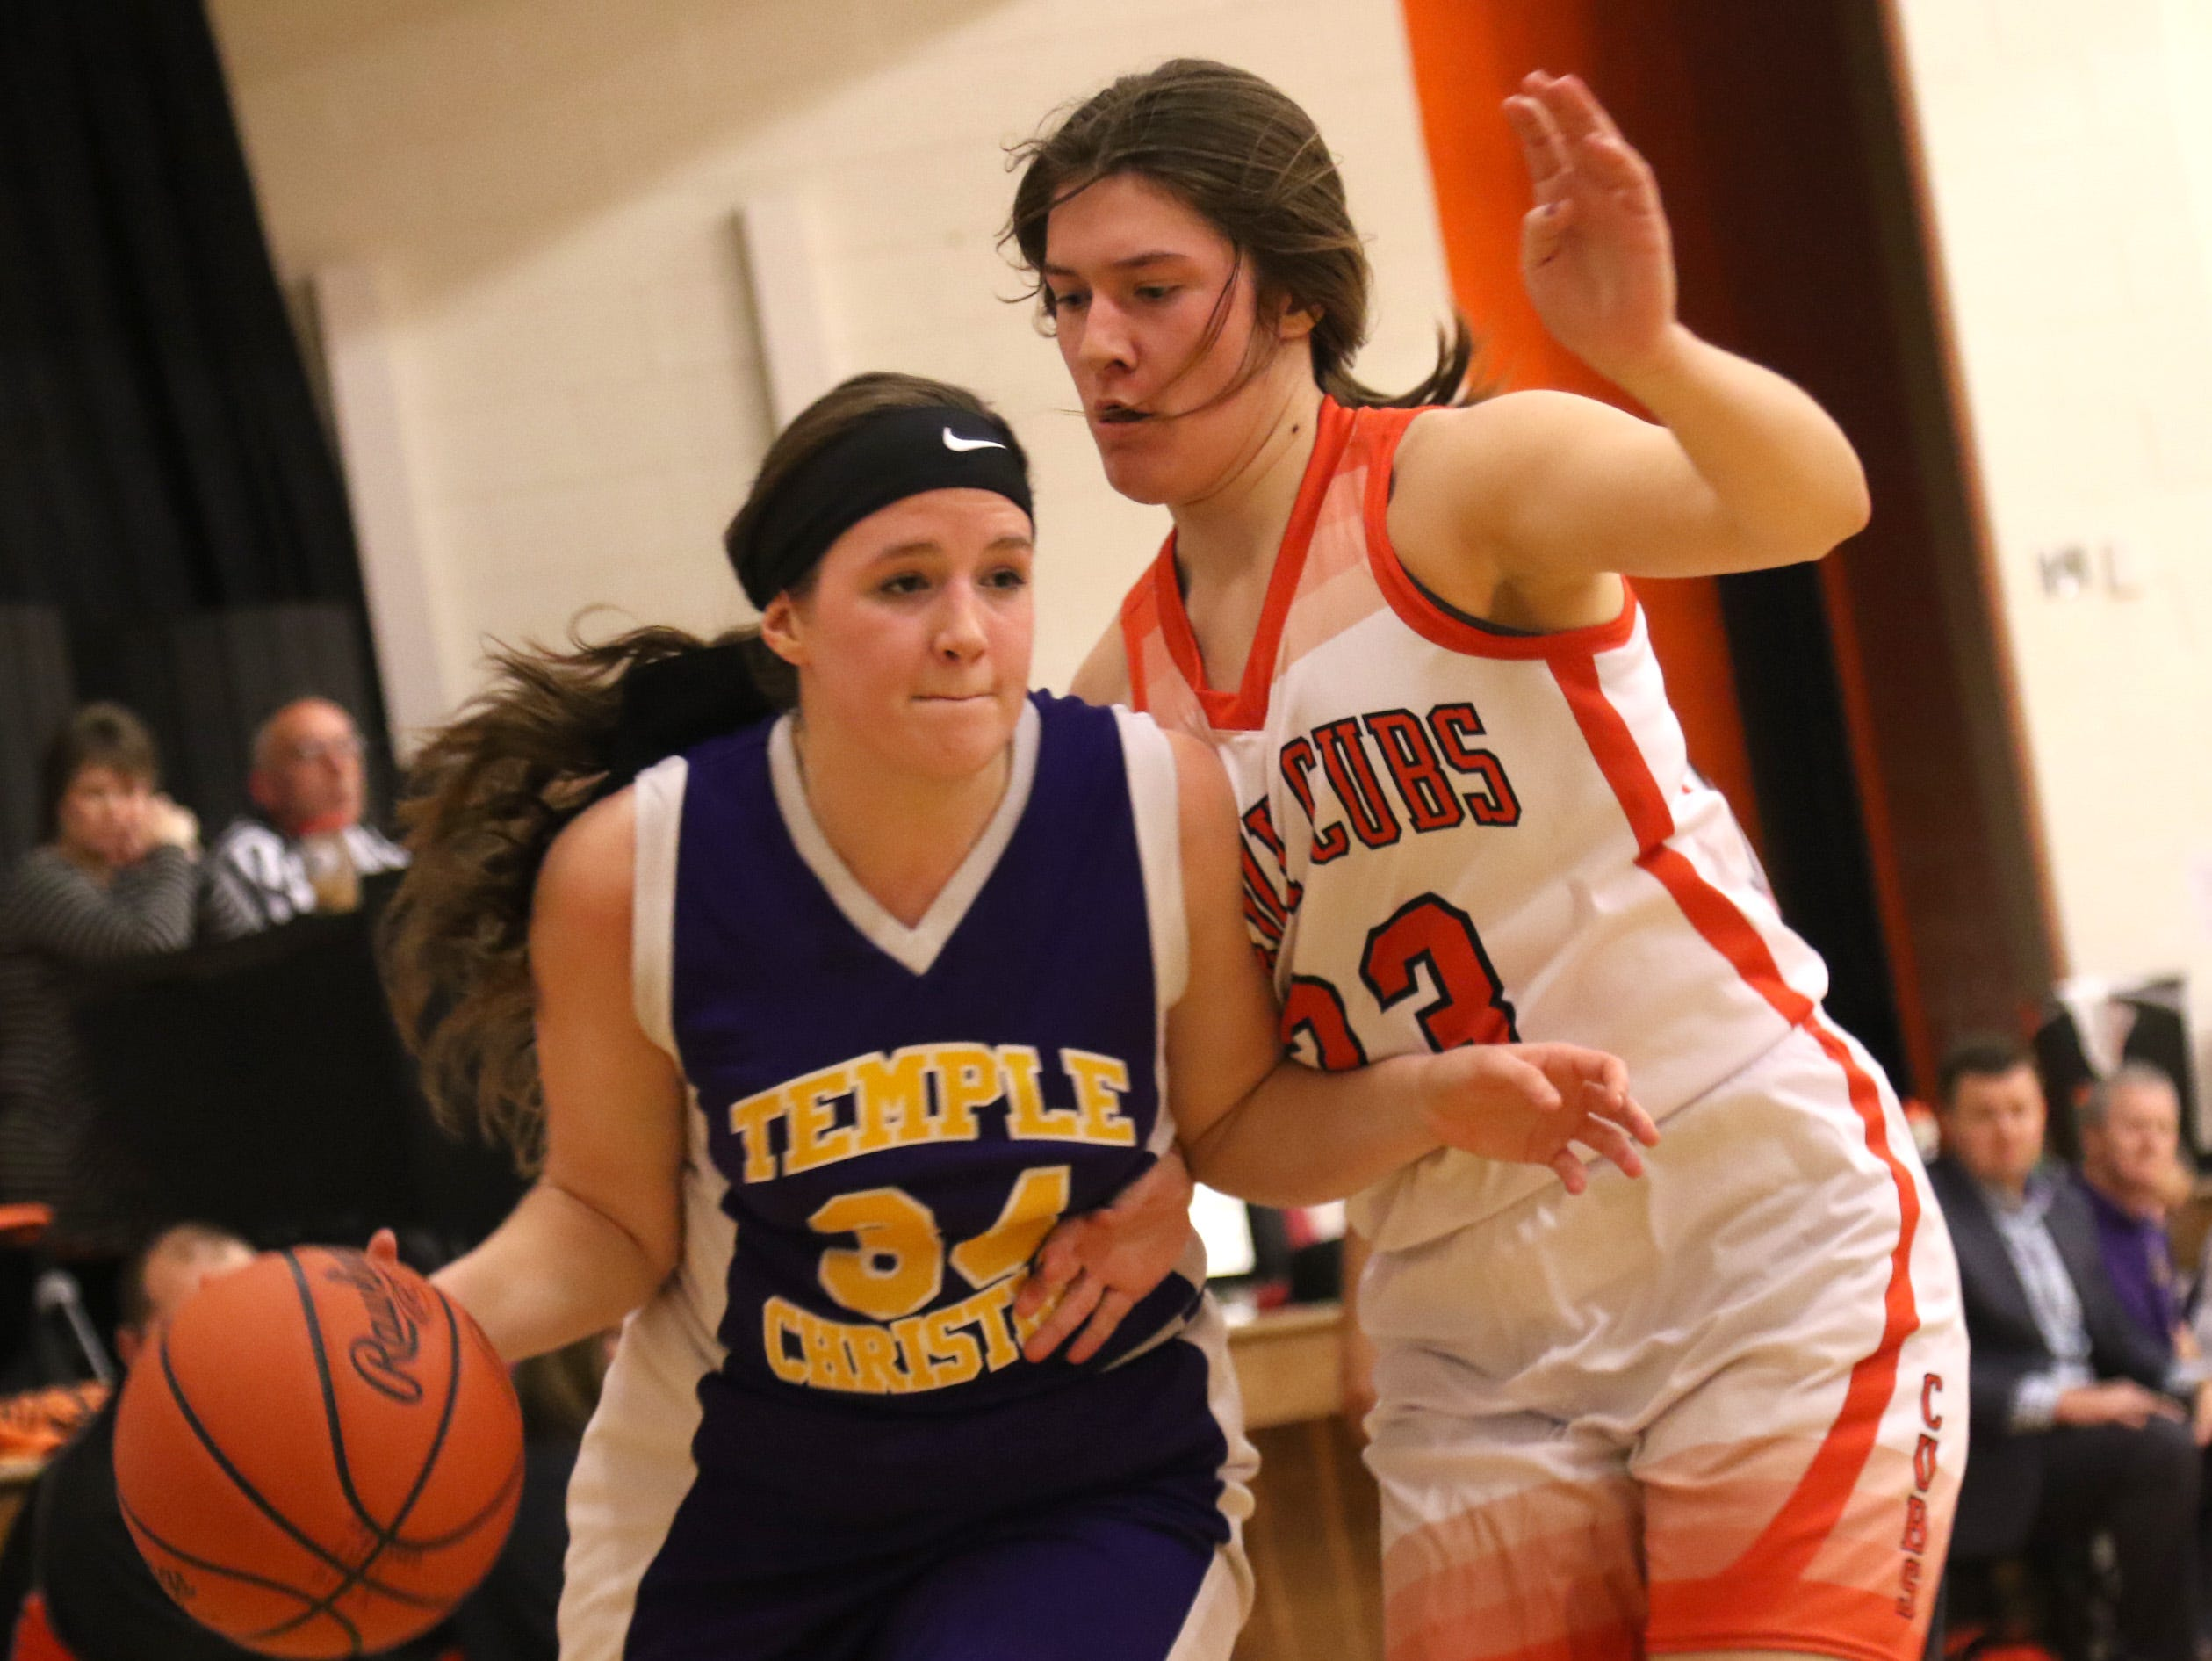 Temple Christian's Carmen Giess on moves the ball while playing at Lucas on Tuesday.